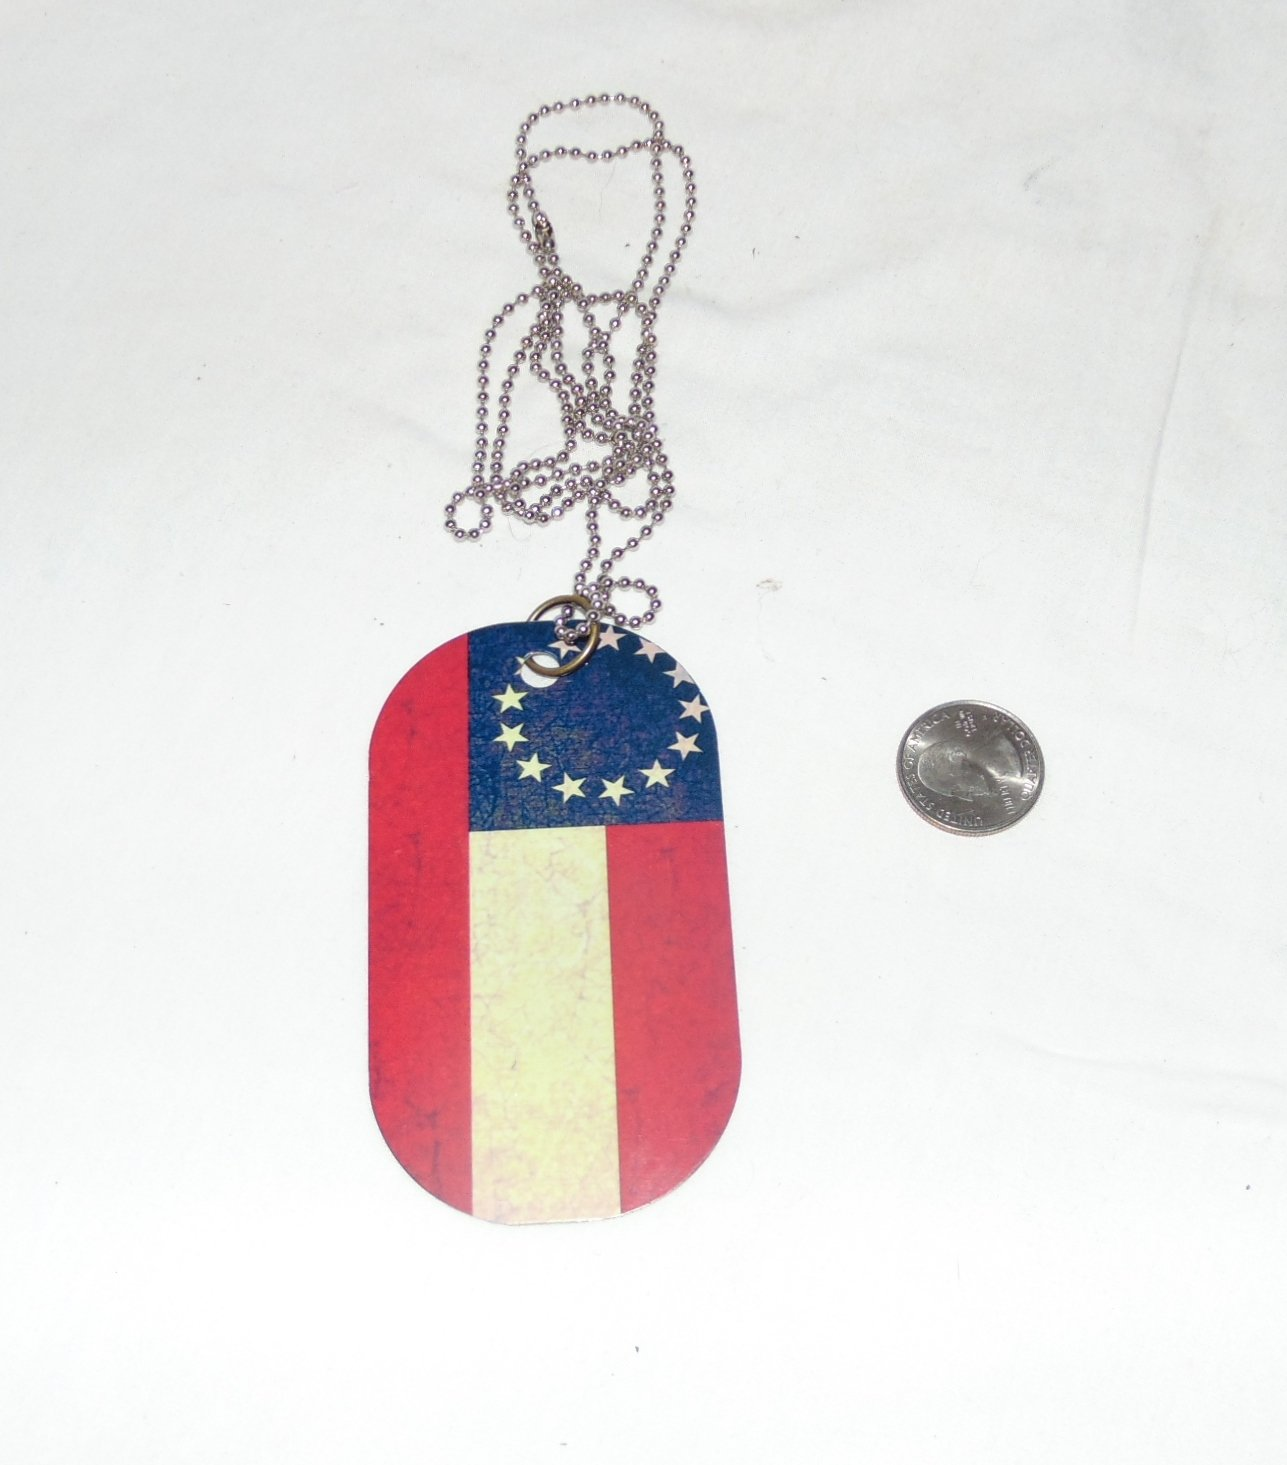 13 STAR CSA oversized dog tag necklace rear view mirror decoration 4 x 2.25""